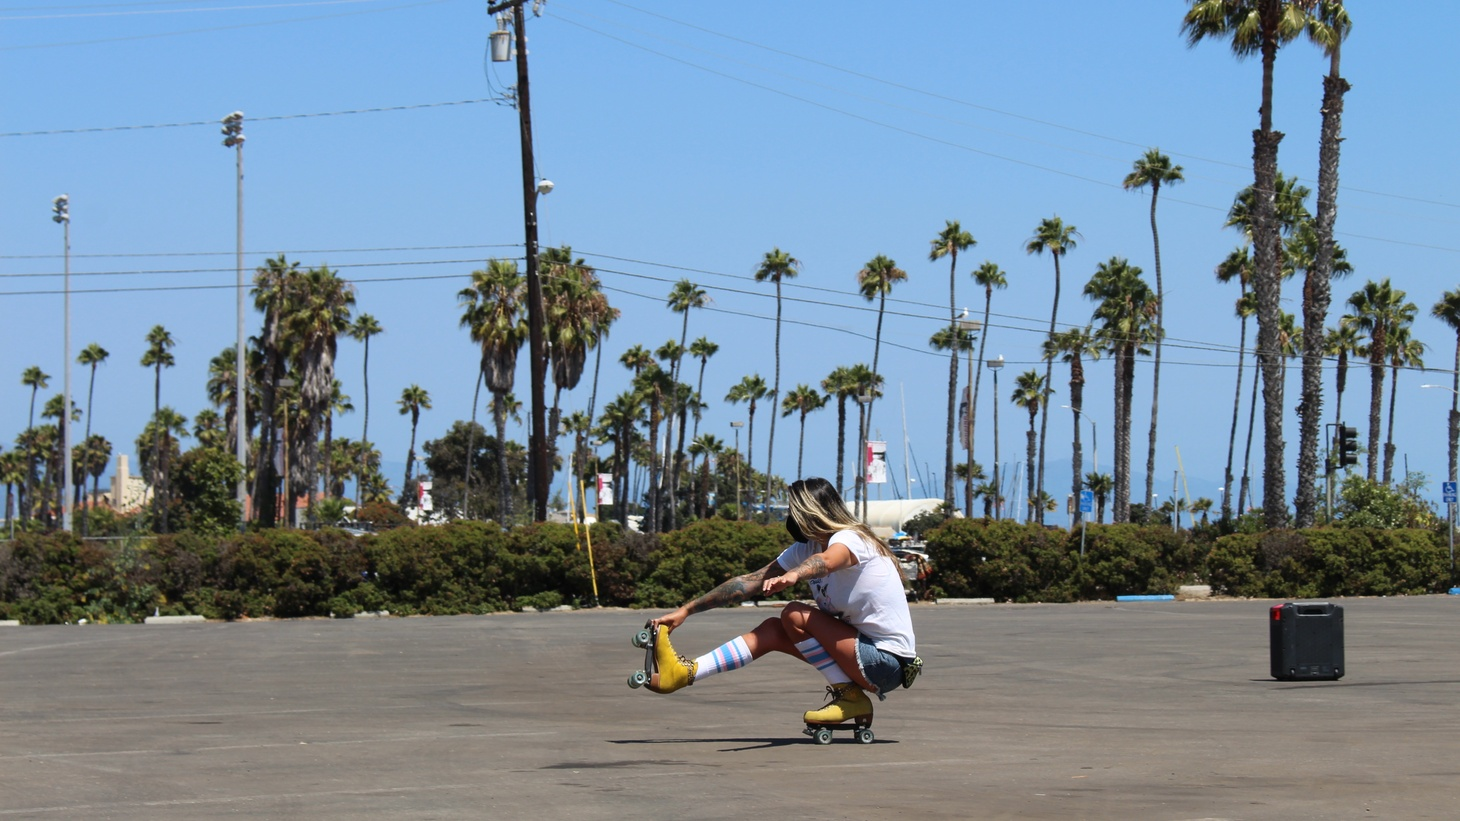 A skater works on her move at a roller skating meetup in Santa Barbara.